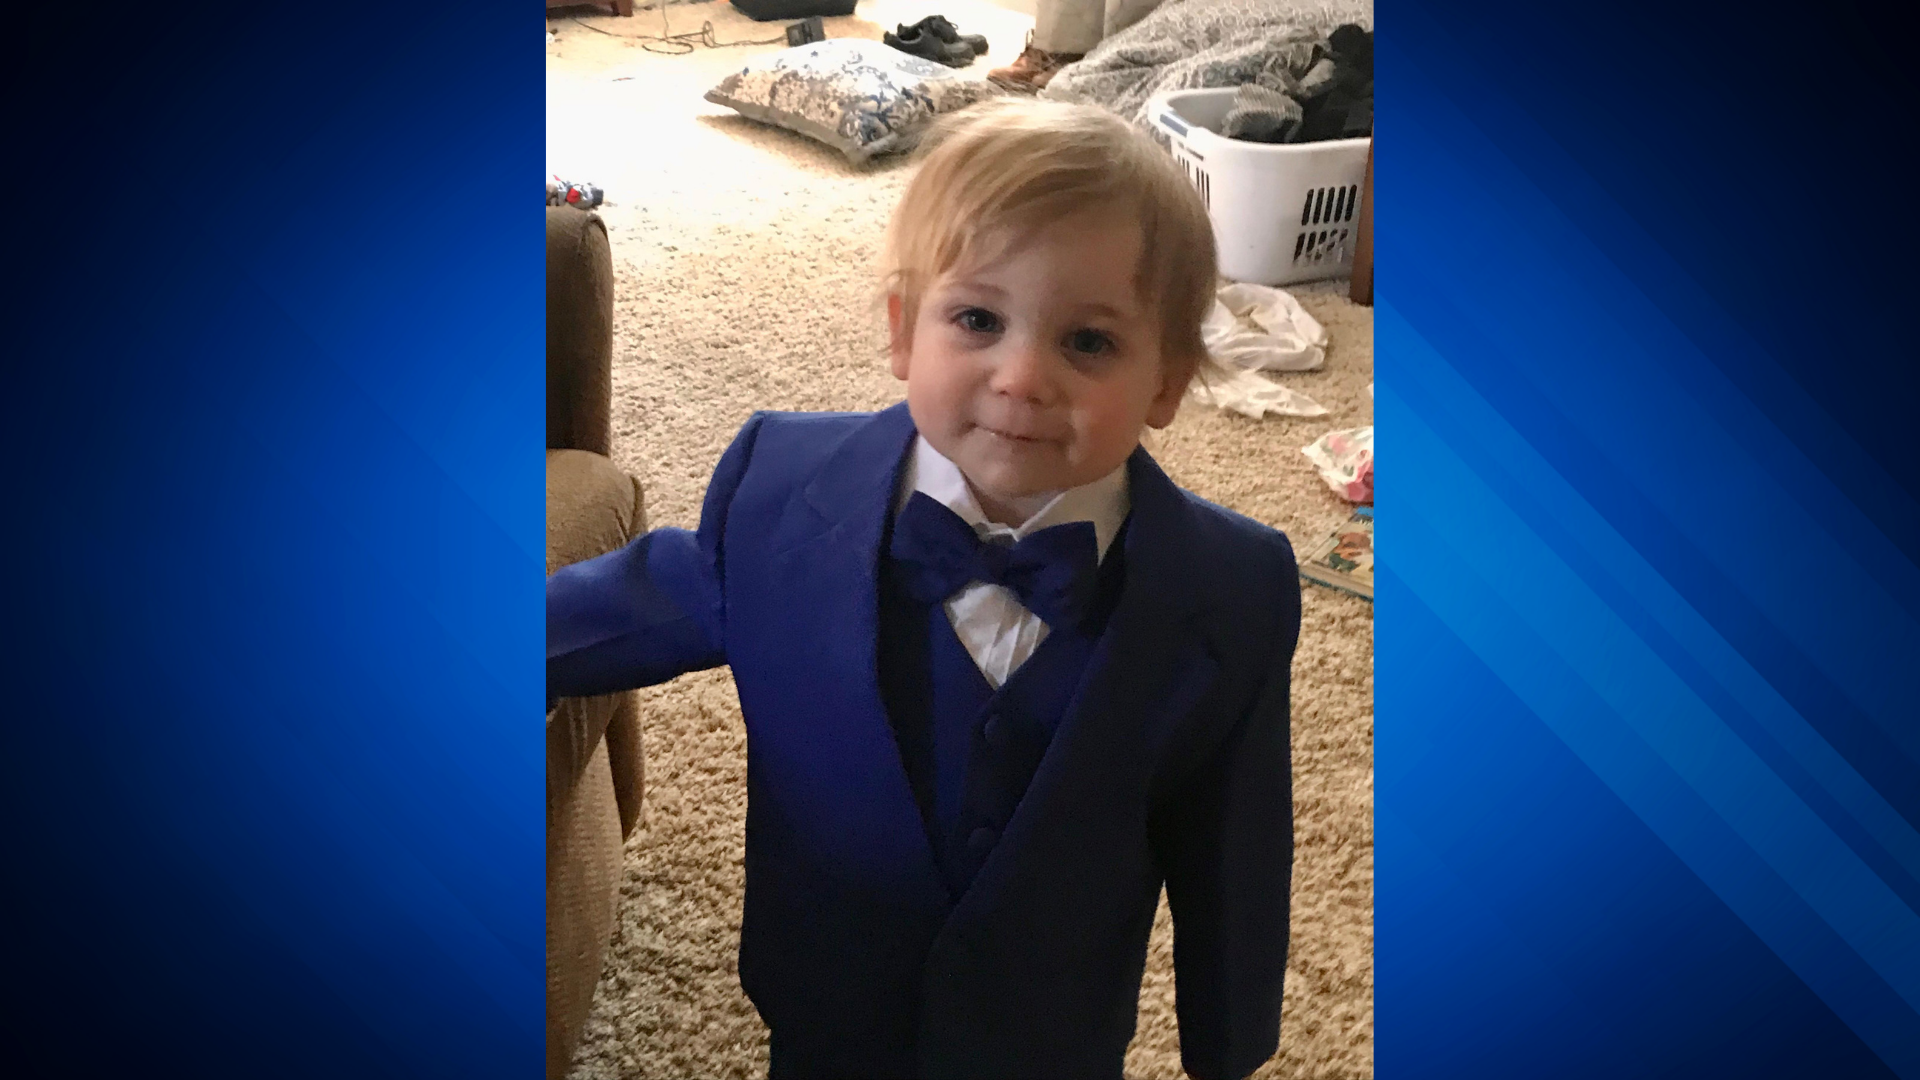 Police identify 1-year-old boy who drowned in family pool in Wrentham